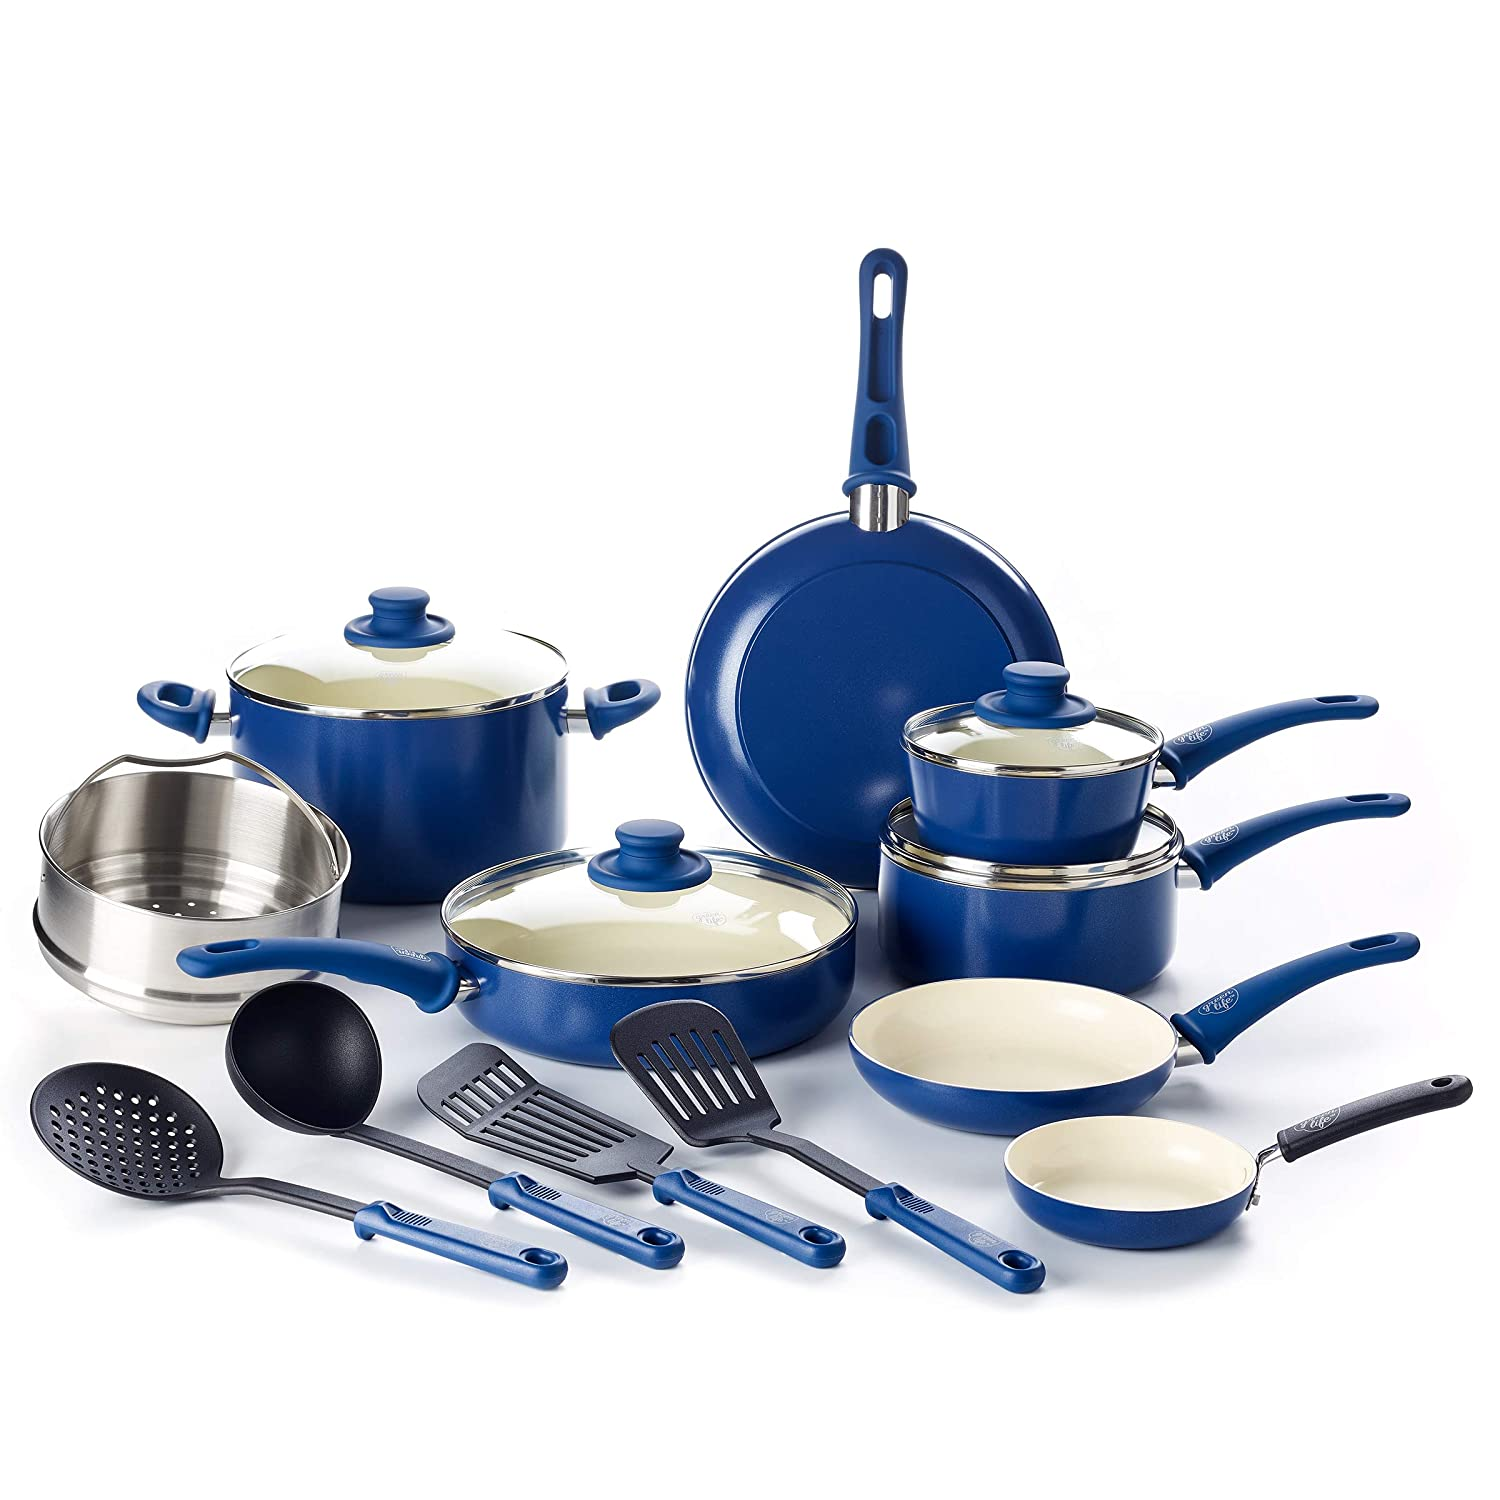 GreenLife CC002378-001 Soft Grip 16 Piece Ceramic Non-Stick Cookware Set, Blue